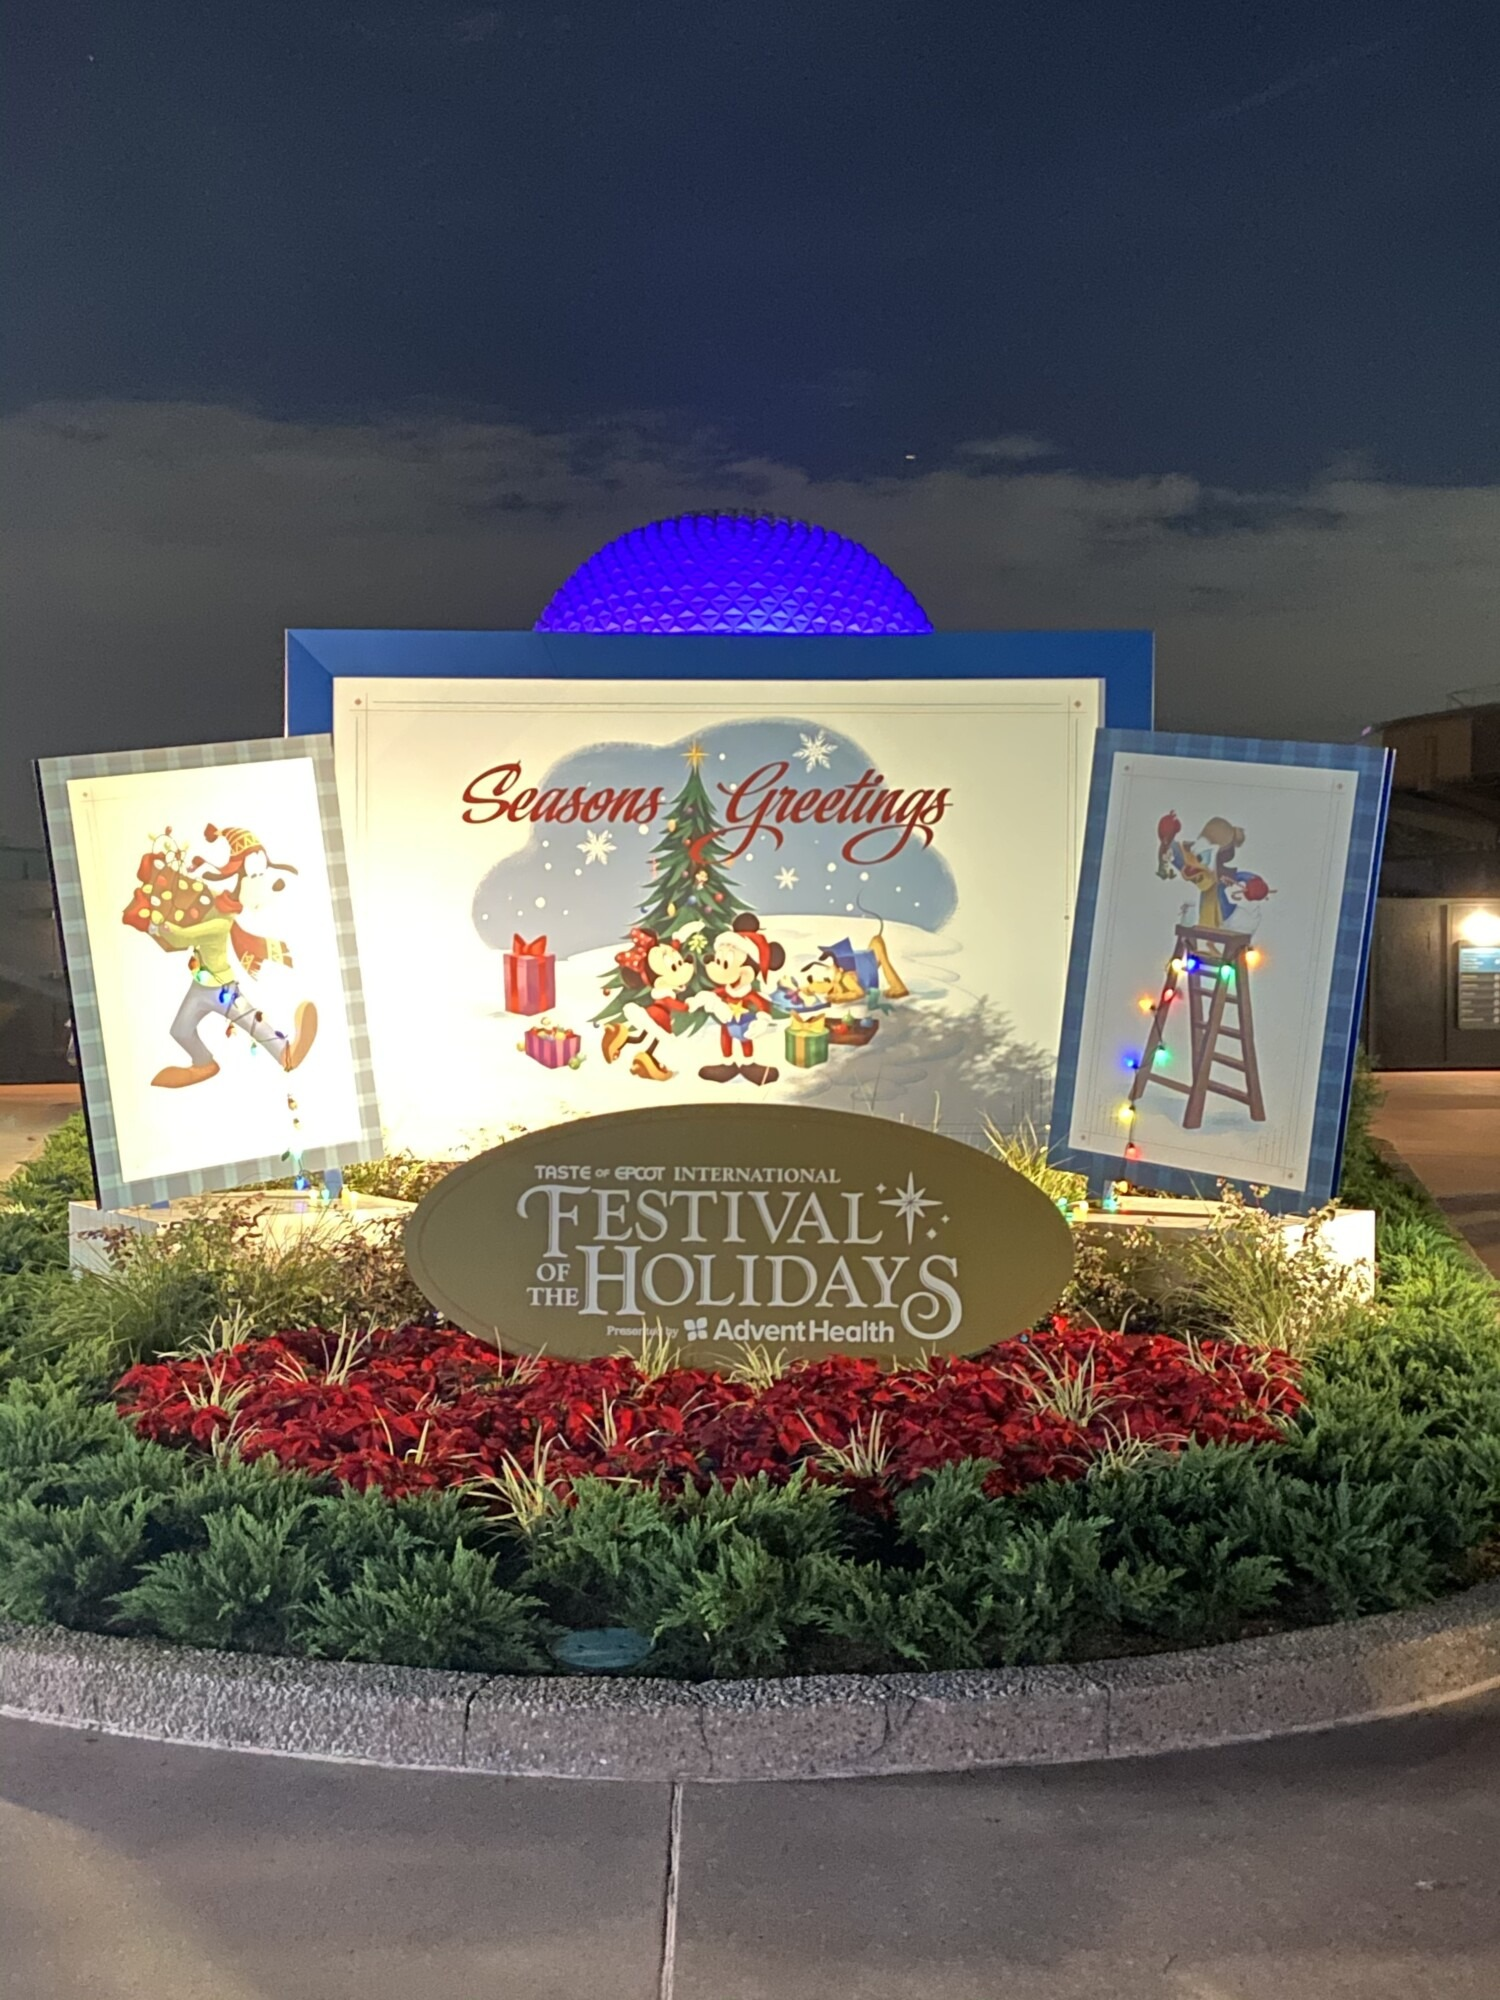 Photos from Opening Weekend at the Epcot International Festival of the Holidays 1